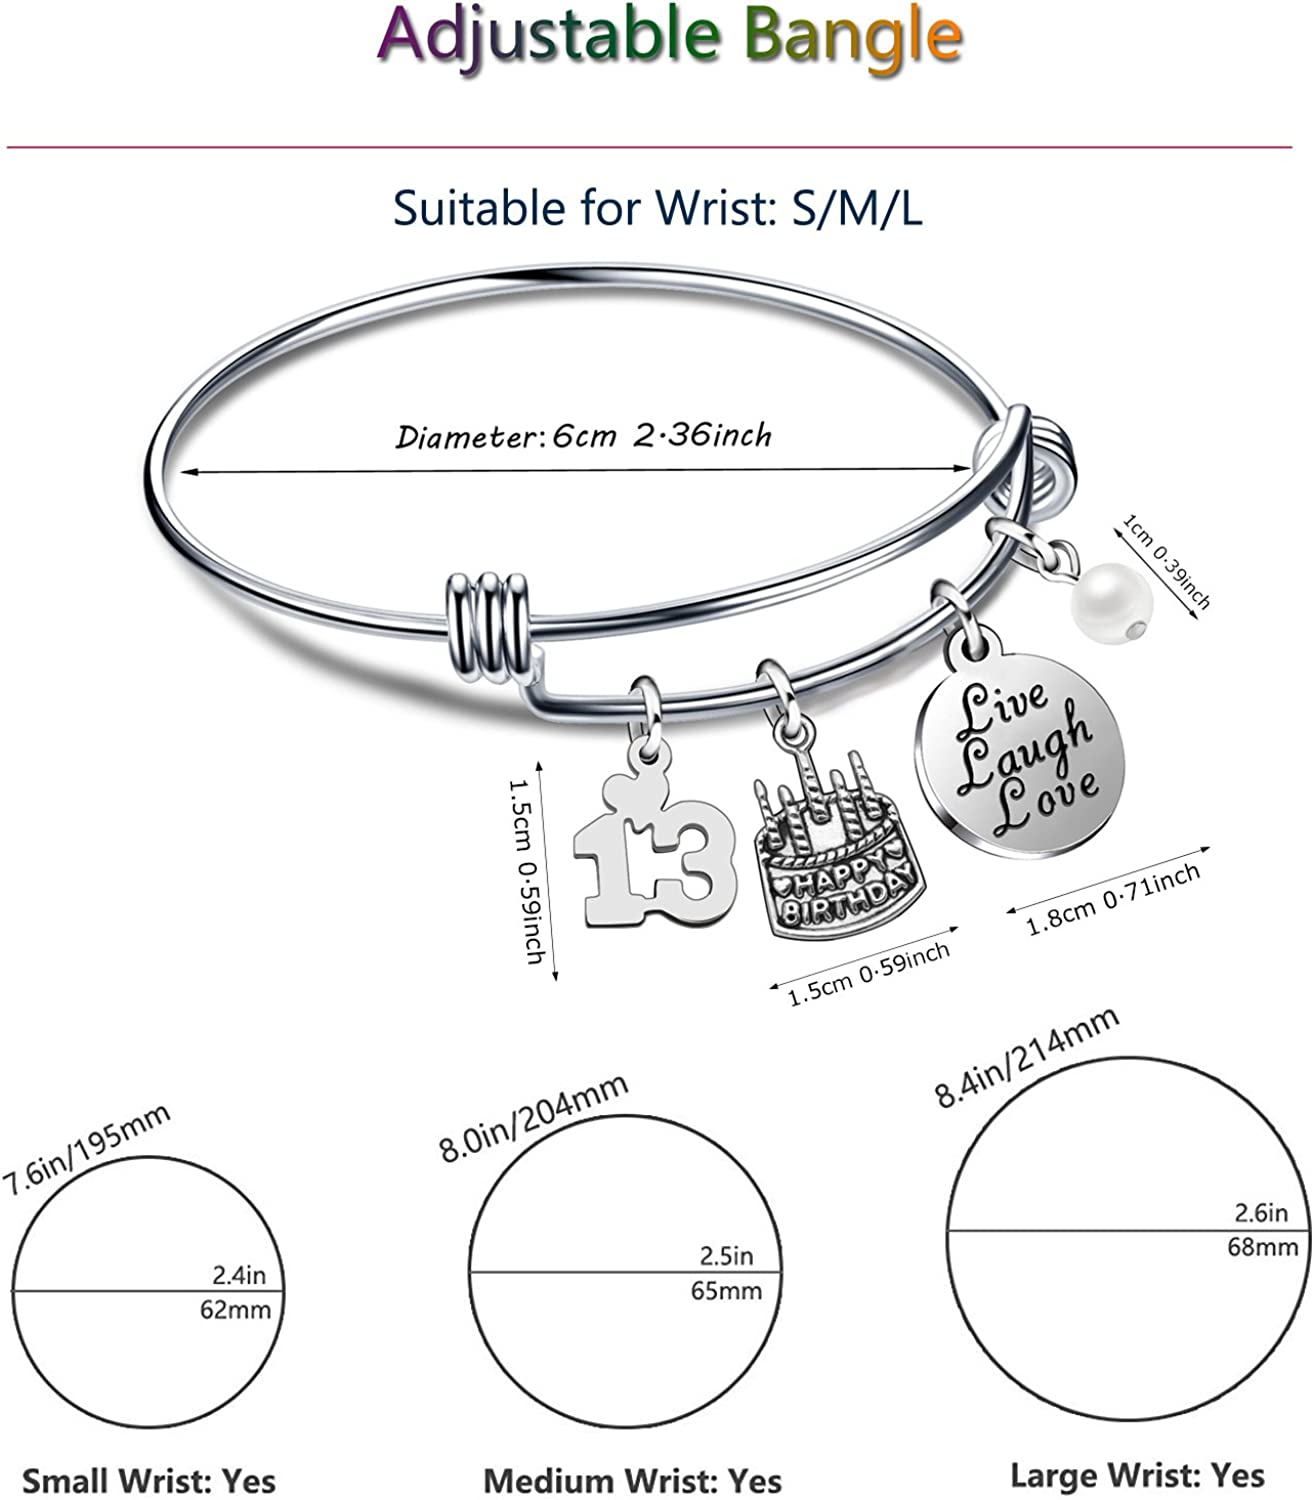 Guinea pig bracelet adjustable bangle 16th 18th 21st 30th 40th 50th birthday gifts womens jewellery